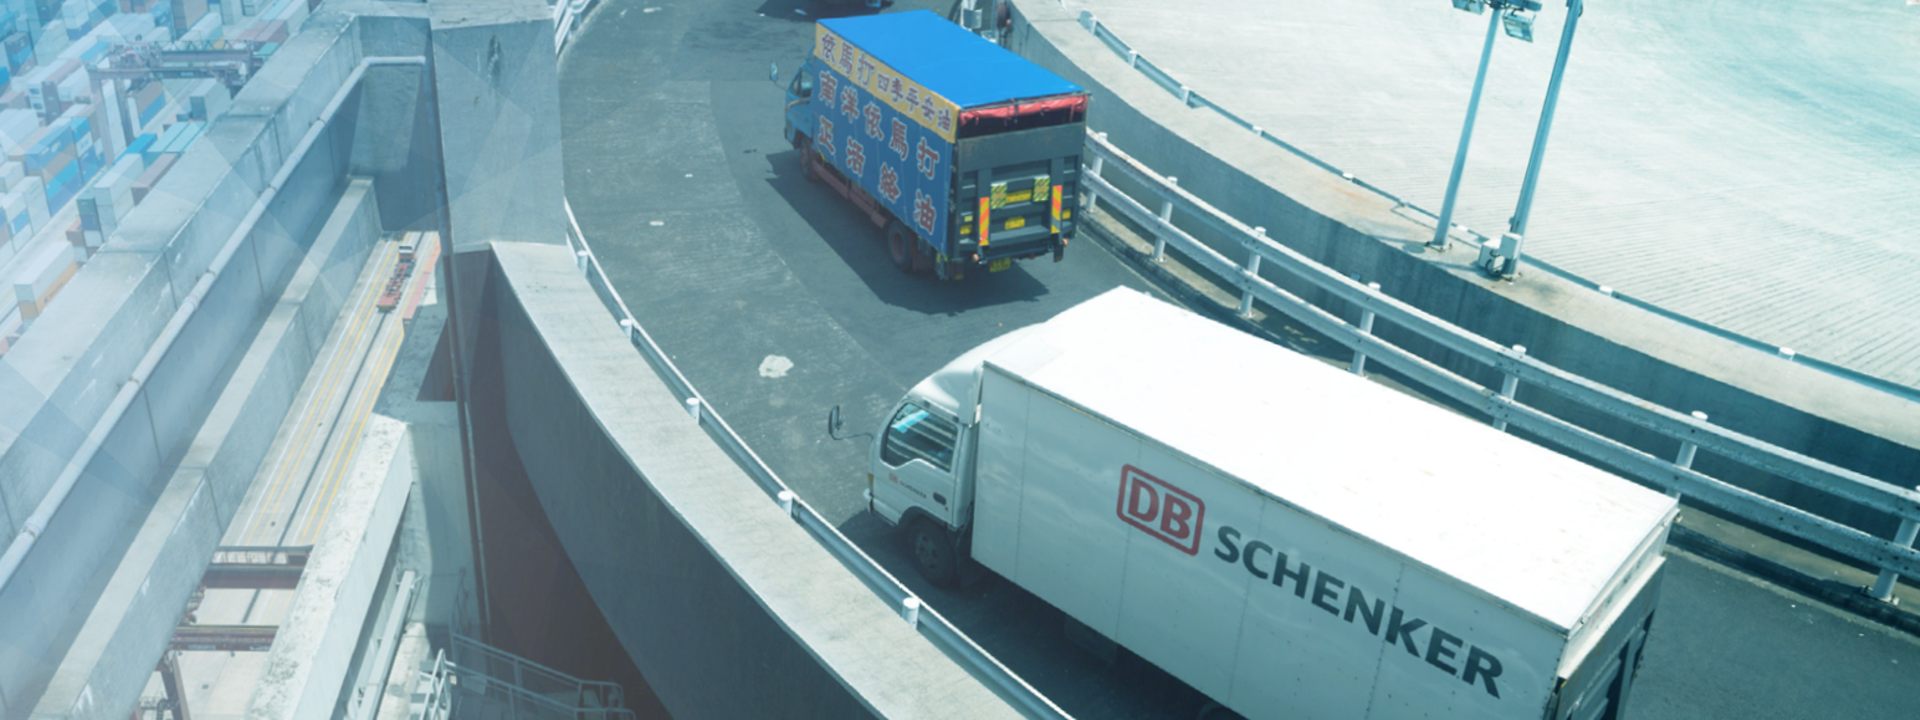 DB Systel_Freight Transport and Logistics_Truck-Container